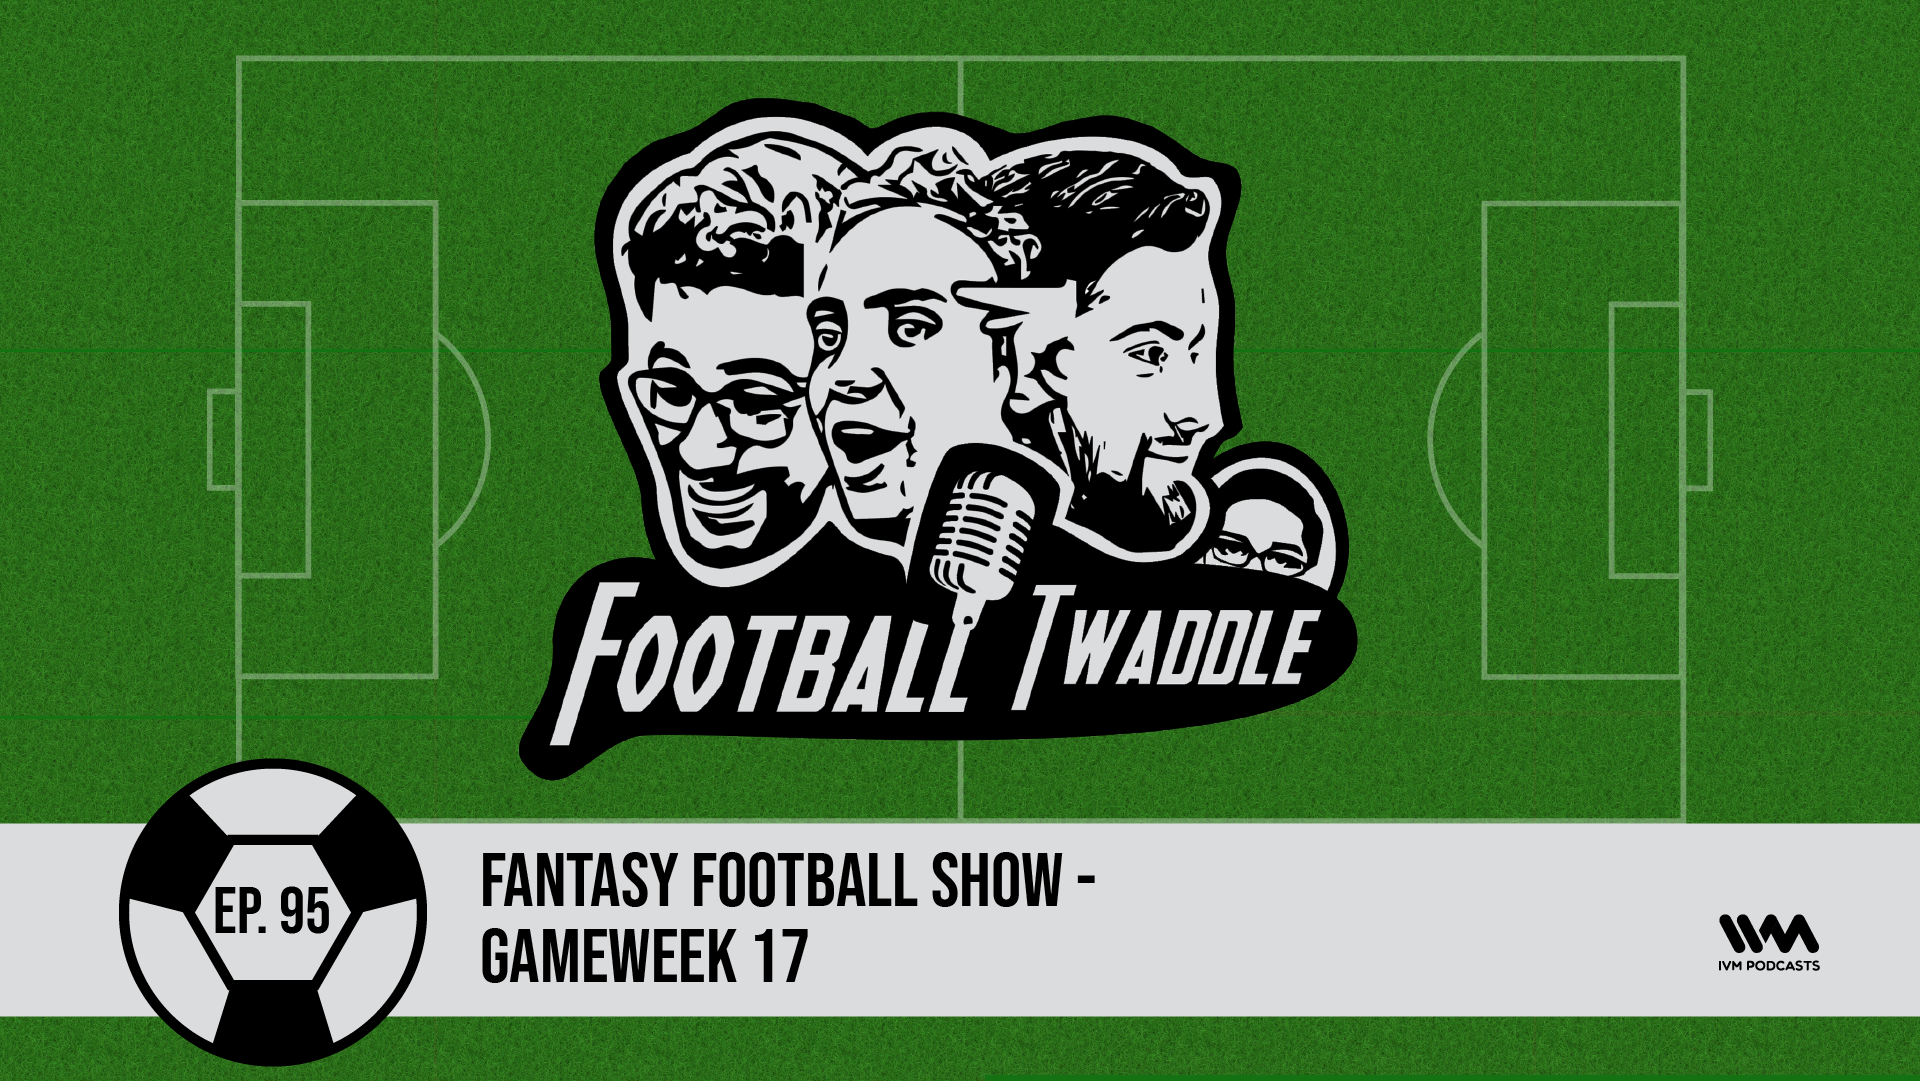 FootballTwaddleEpisode95.png